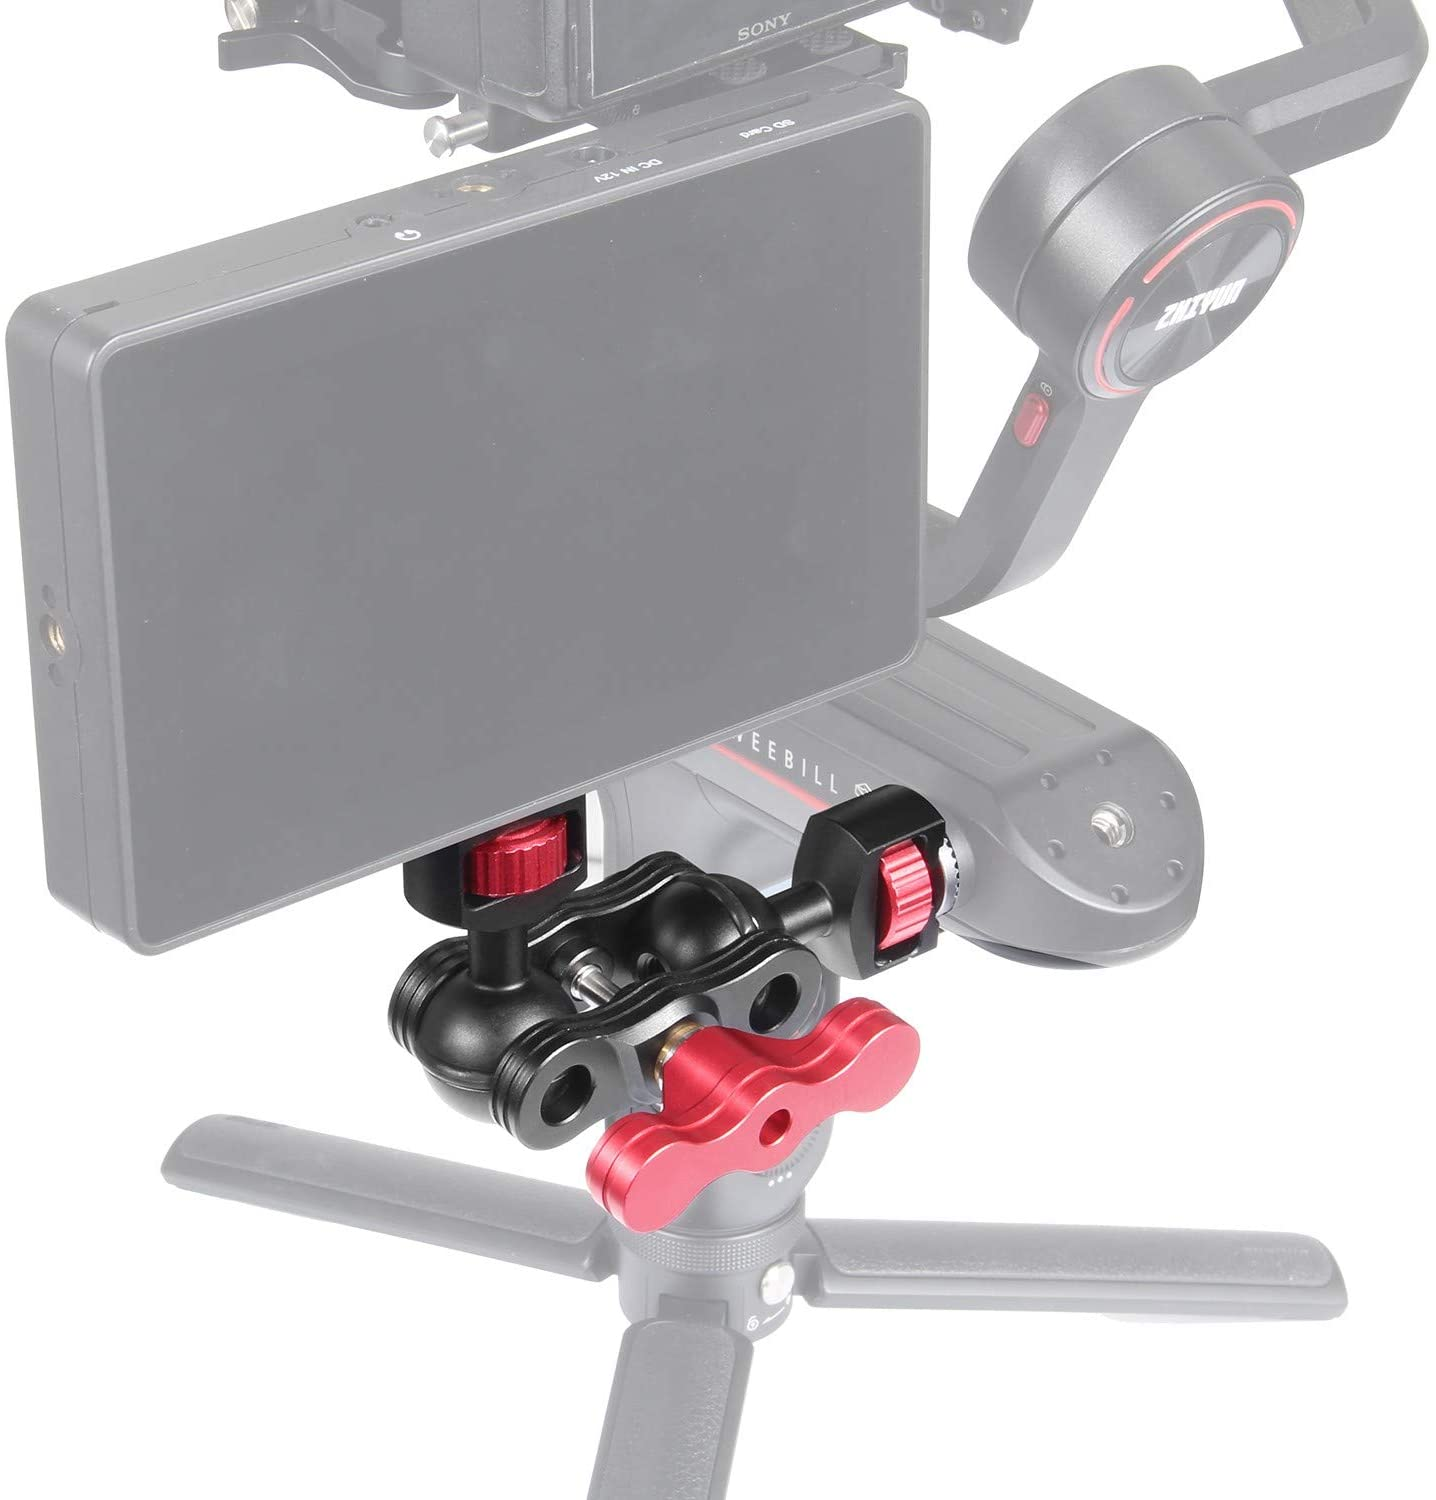 Eachrig Magic Arm with 1/4-20 and Zhiyun Rosette Mount for Zhiyun Weebill S/Weebill Lab/Crane 3 Camera cage Camera Monitors Viewfinders Accessories